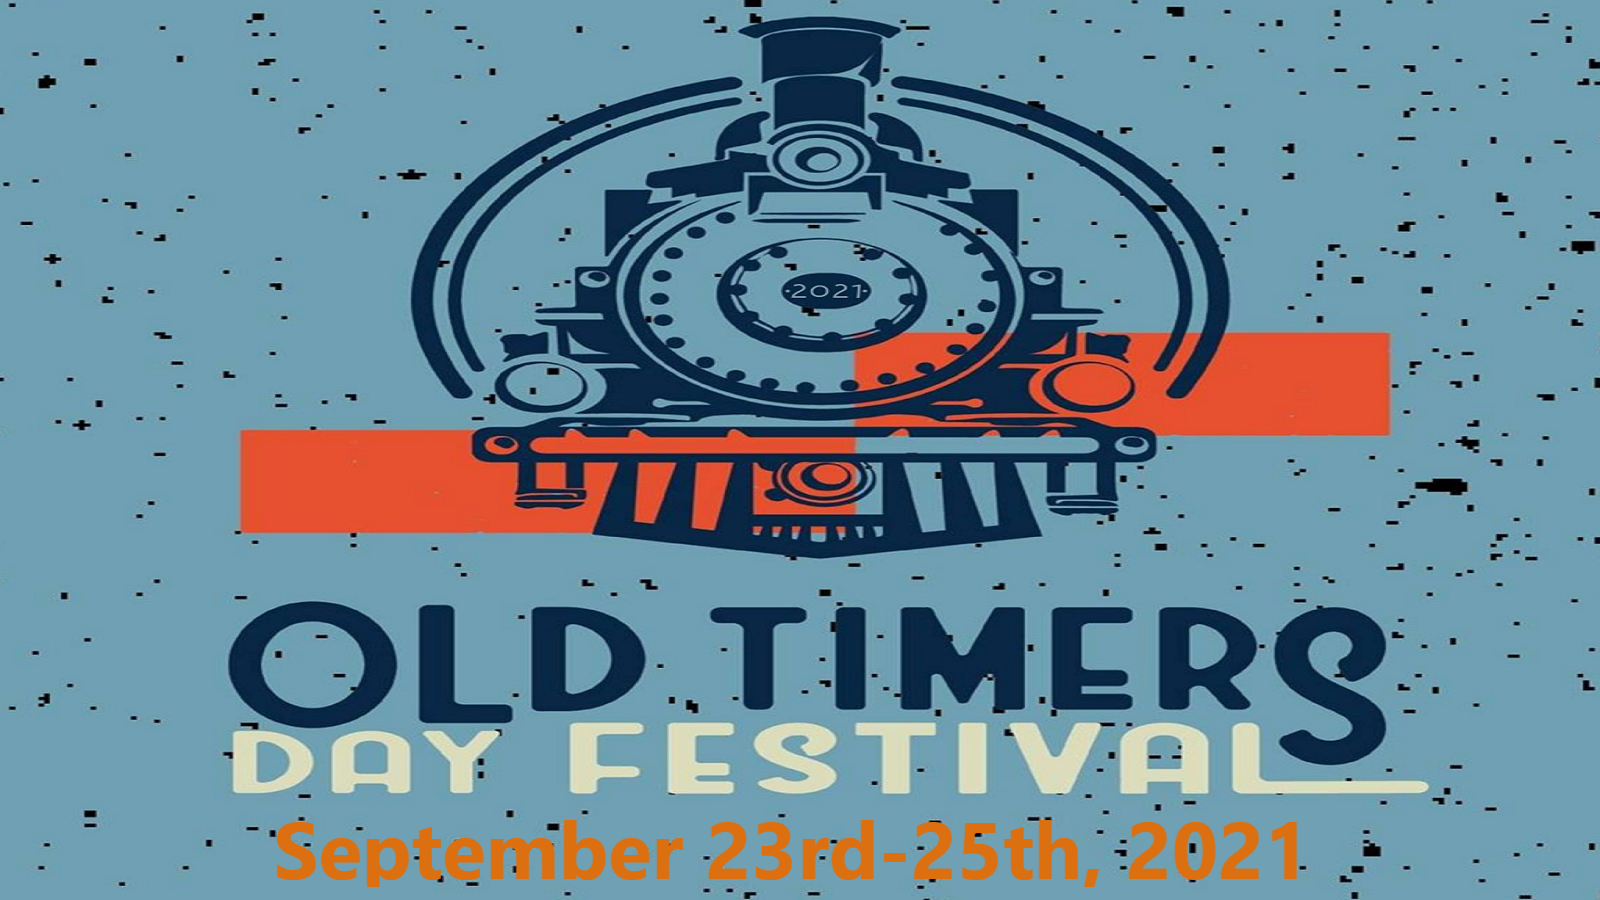 Old Timers Day Festival